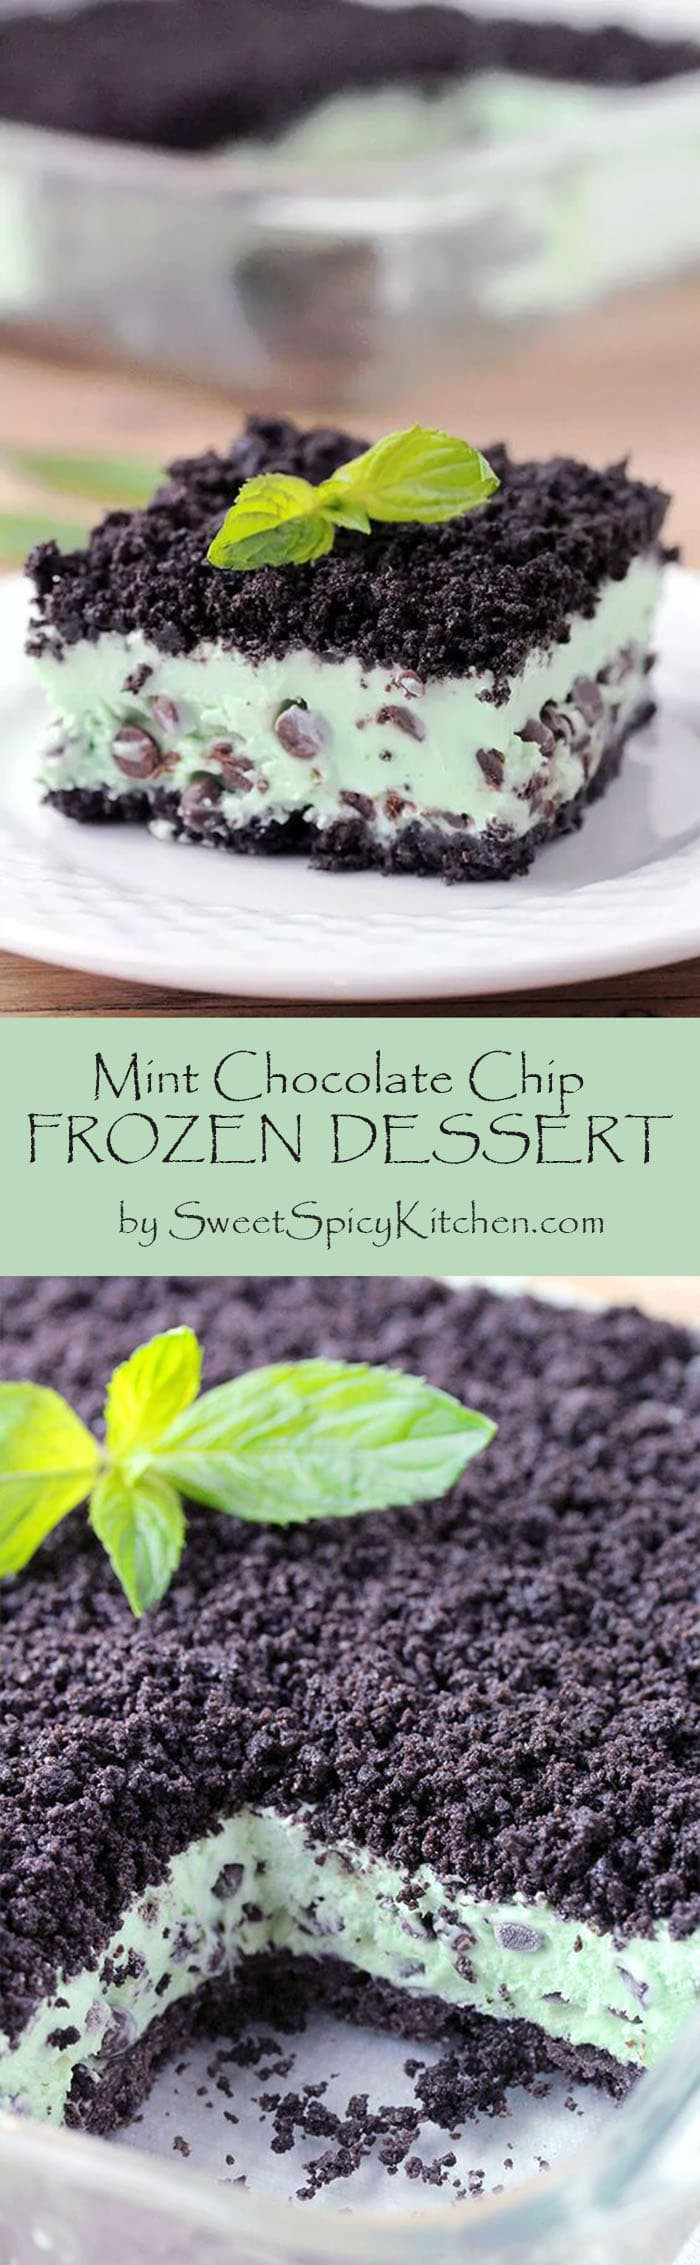 Mint Chocolate Chip Frozen Dessert – Oreo layer, mint chocolate chips filling, all topped with Oreo crumbs make this dessert amazing. This frozen, refreshing mint dessert is so easy to prepare.